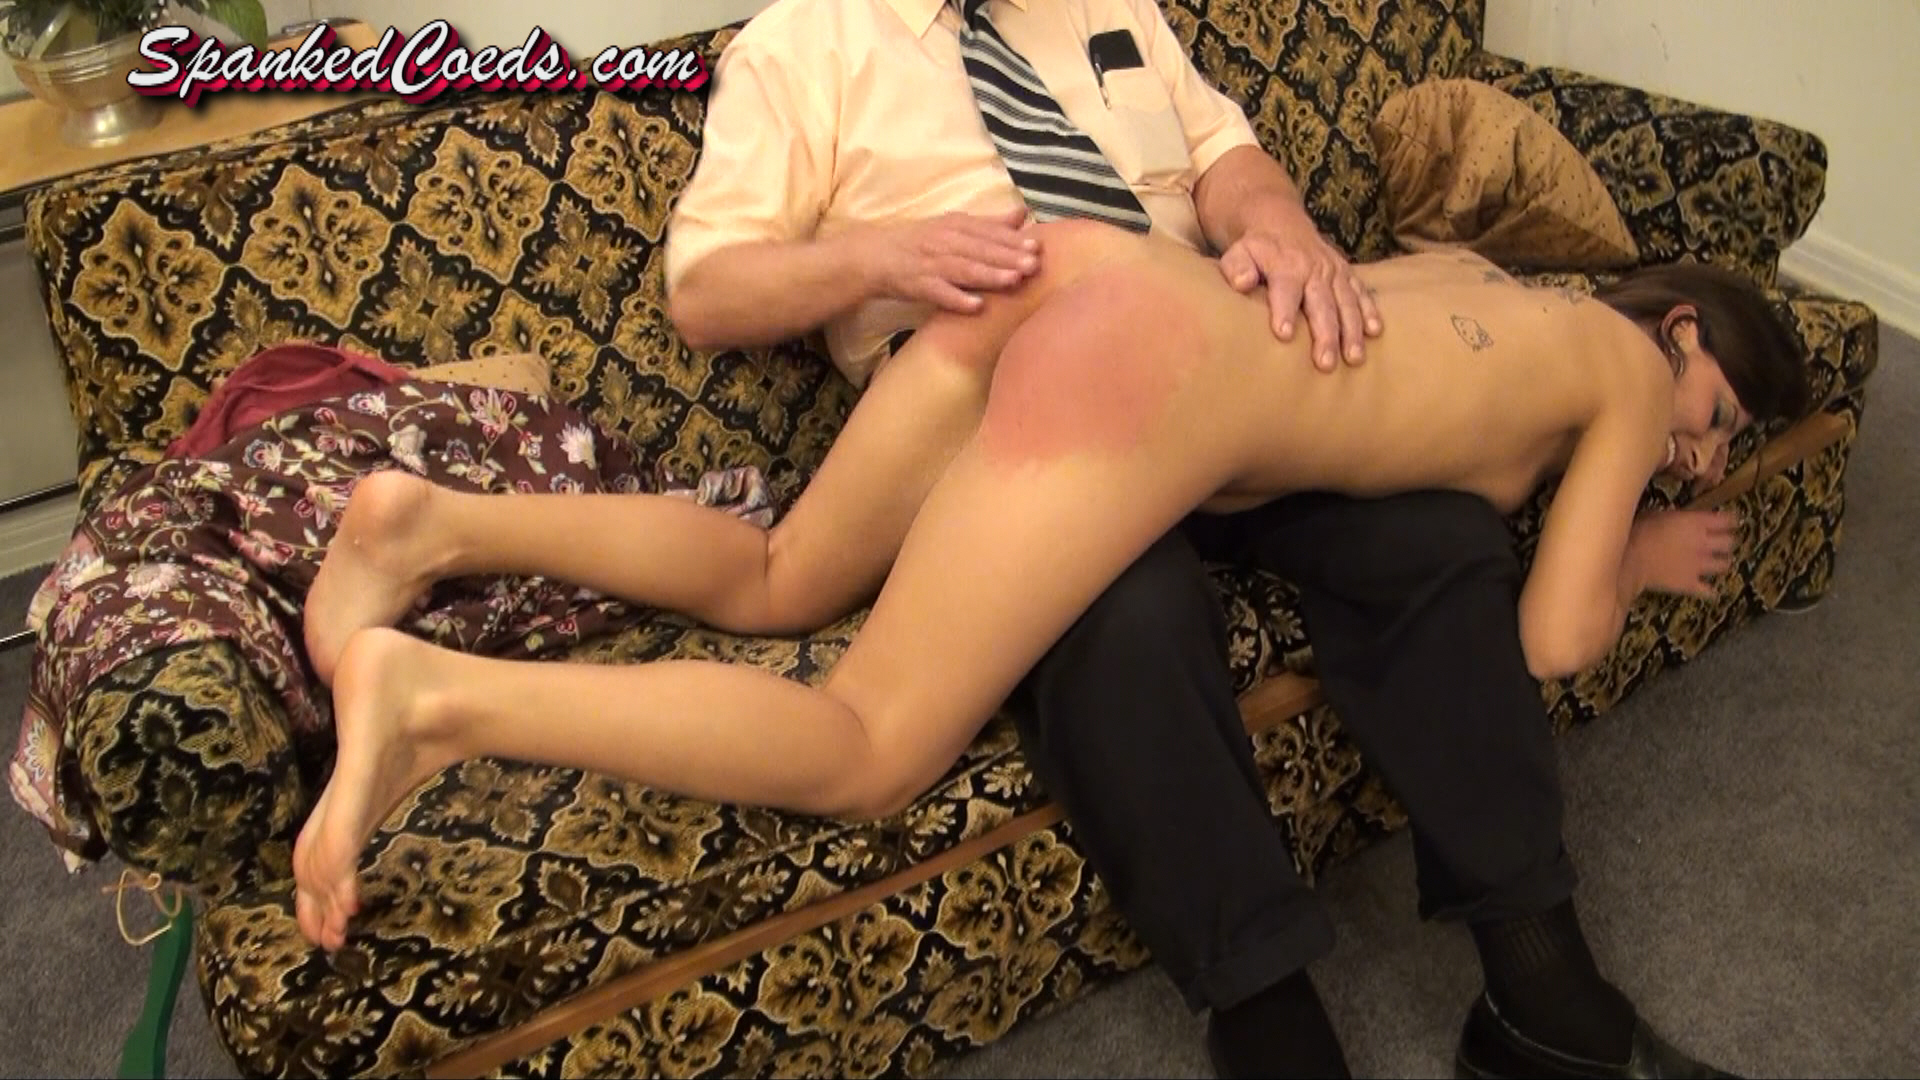 Women spanked over the knee